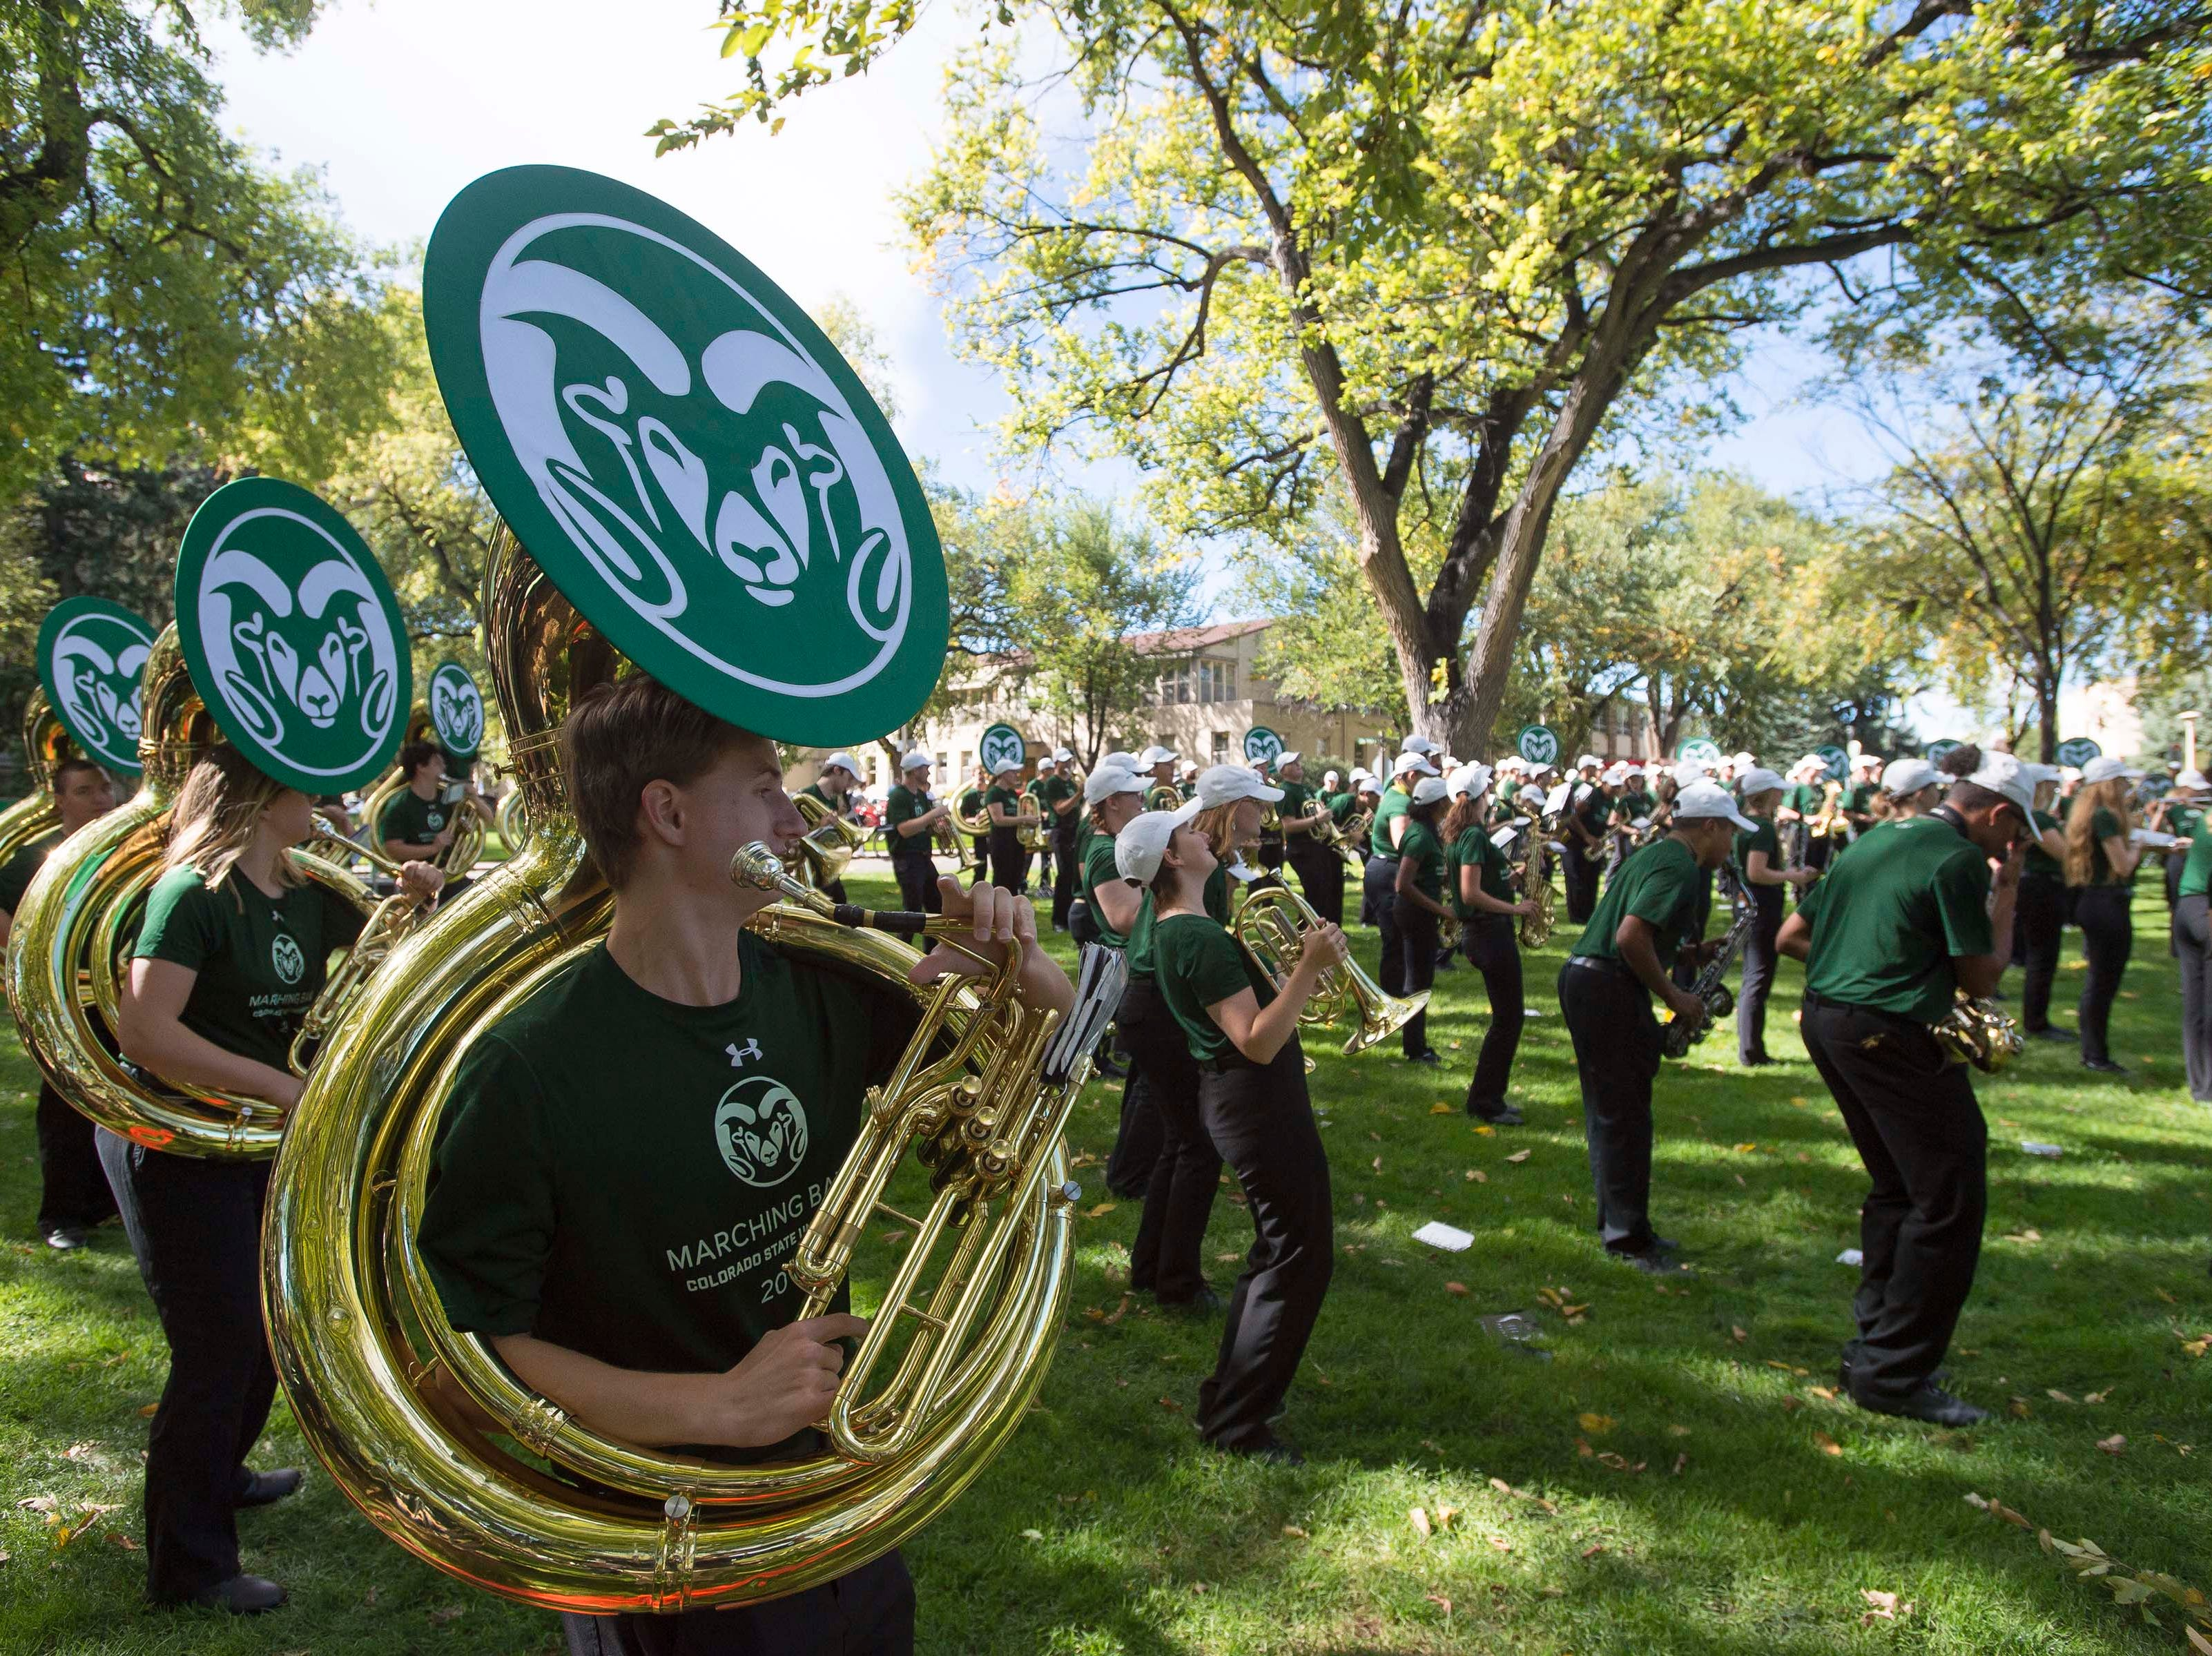 The CSU marching band plays before the 2018 fall address on Wednesday, Oct. 3, 2018, at the Colorado State University campus in Fort Collins, Colo.